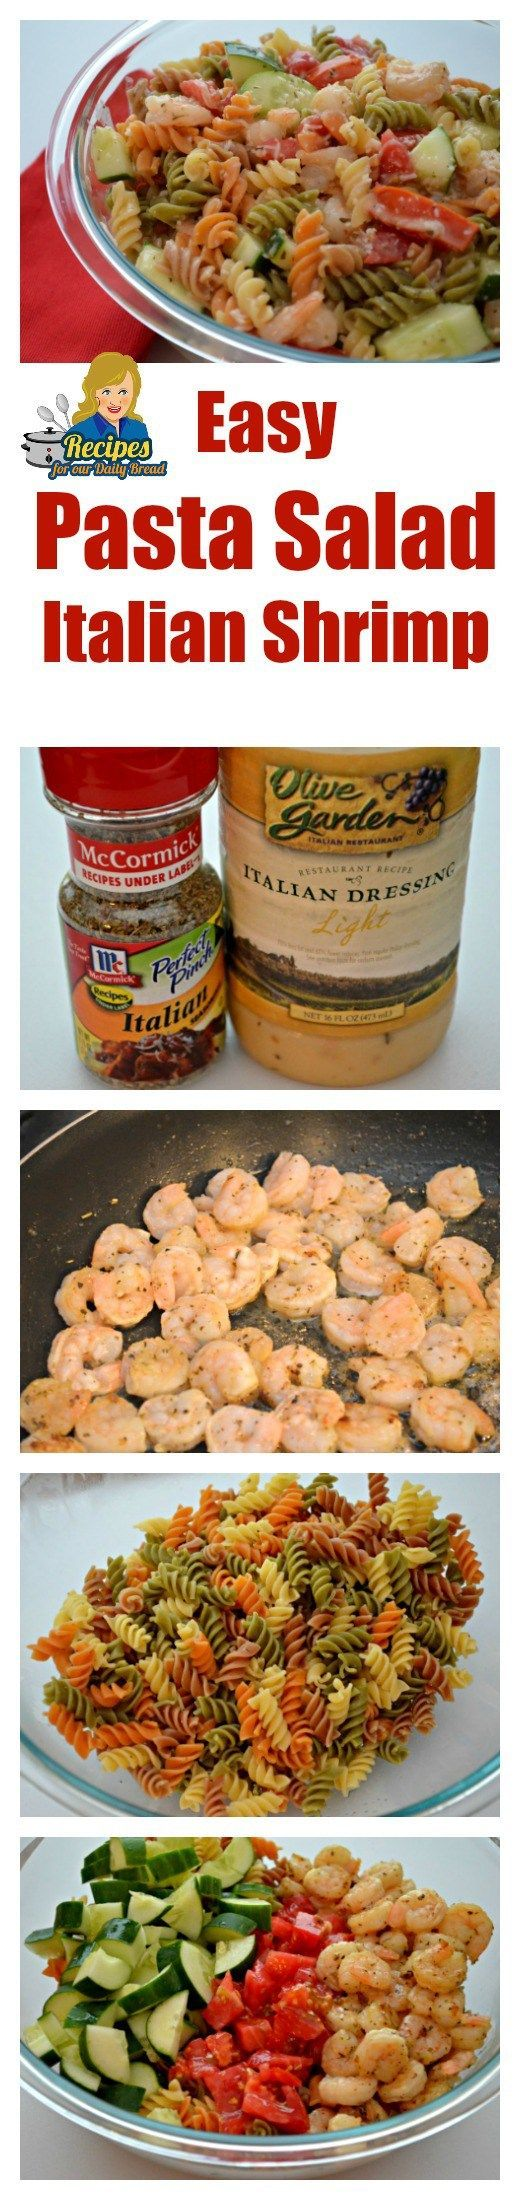 This Easy Pasta Salad Italian Shrimp is made with a bottle of Italian dressing, Italian seasoning, pasta, shrimp, cucumber, tomato and Italian Cheese.